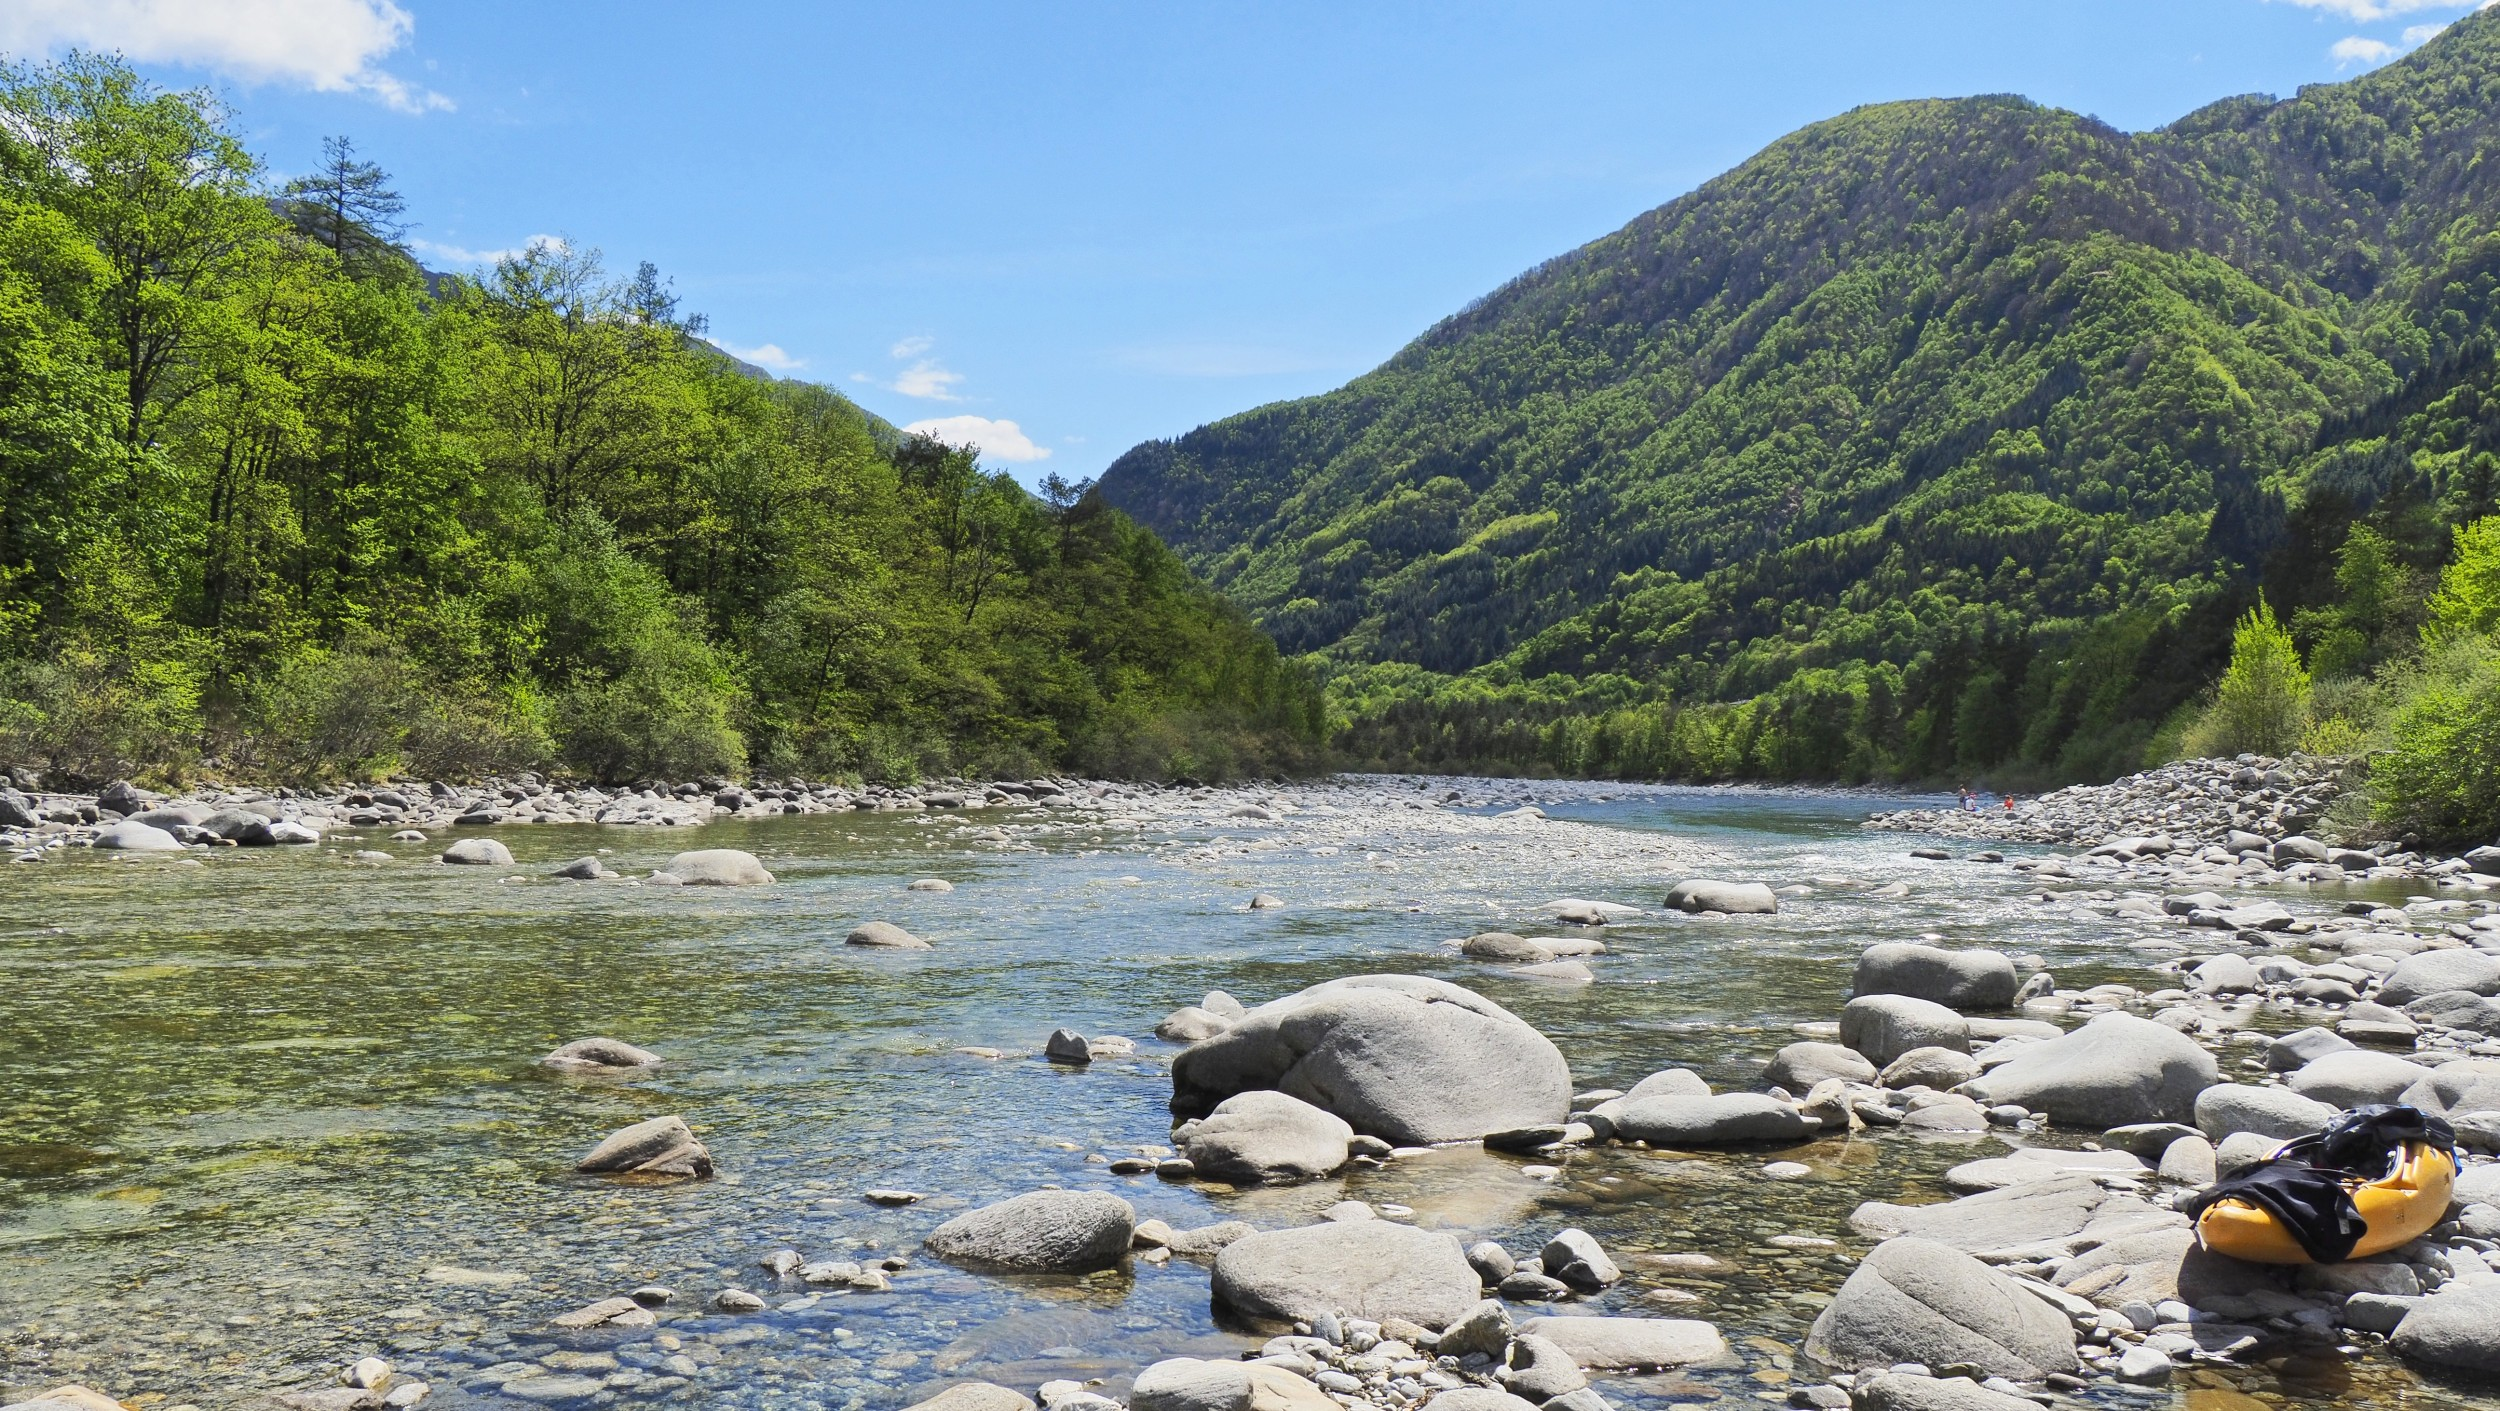 Wonderful but not untouched – the alluvial zones of the Maggia are greatly impacted by hydropower.